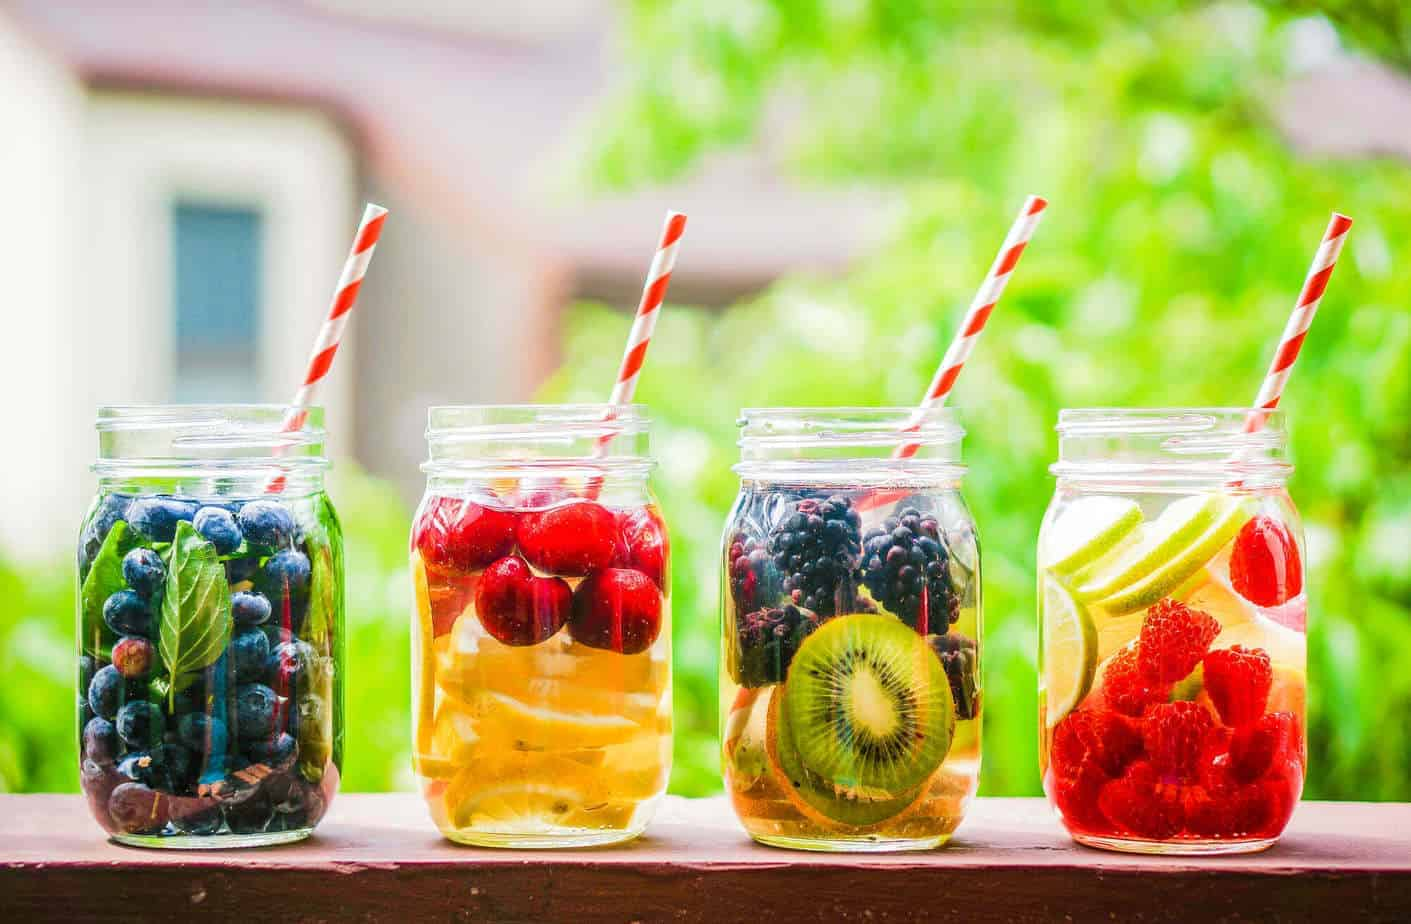 Detox Water Recipes: 12 Tasty Recipes